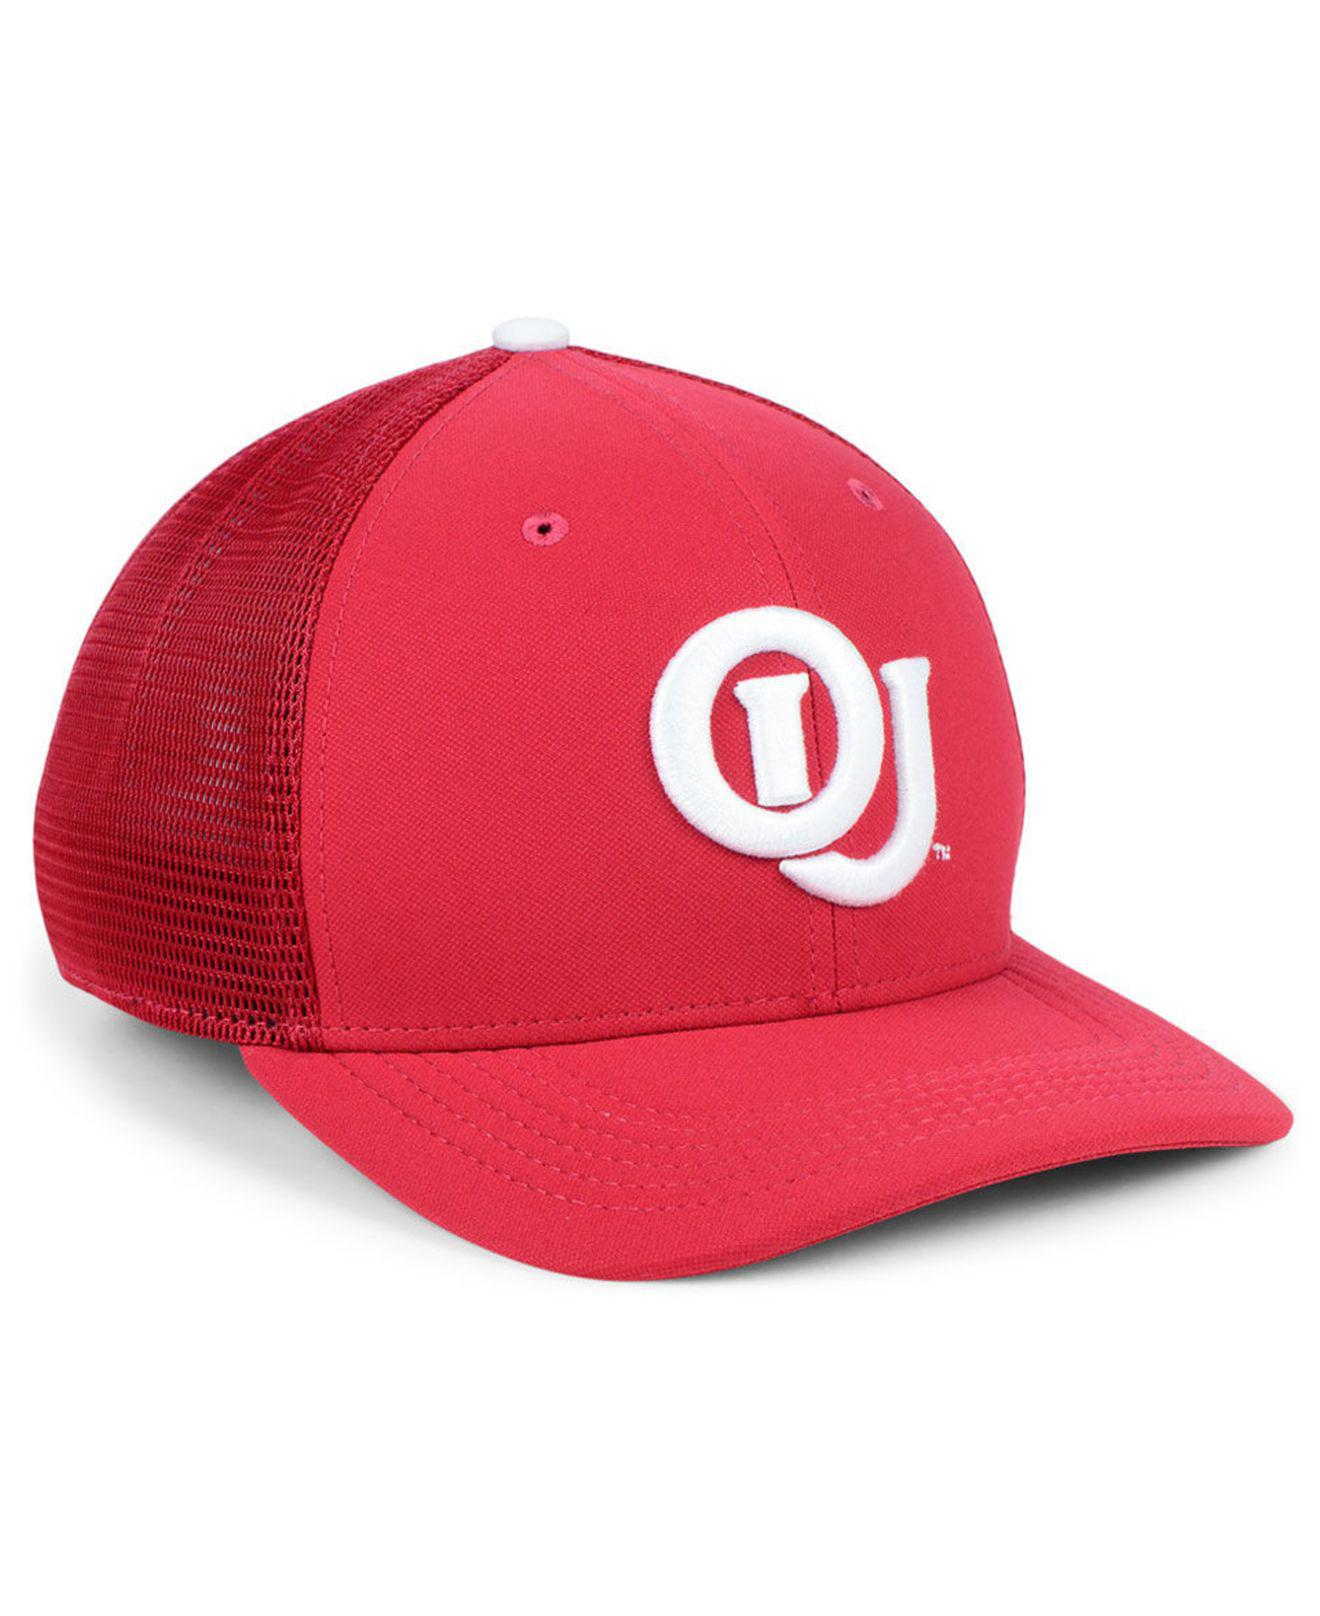 official photos 6bd4c 78a51 ... official store nike red oklahoma sooners col aro swooshflex cap for men  lyst. view fullscreen